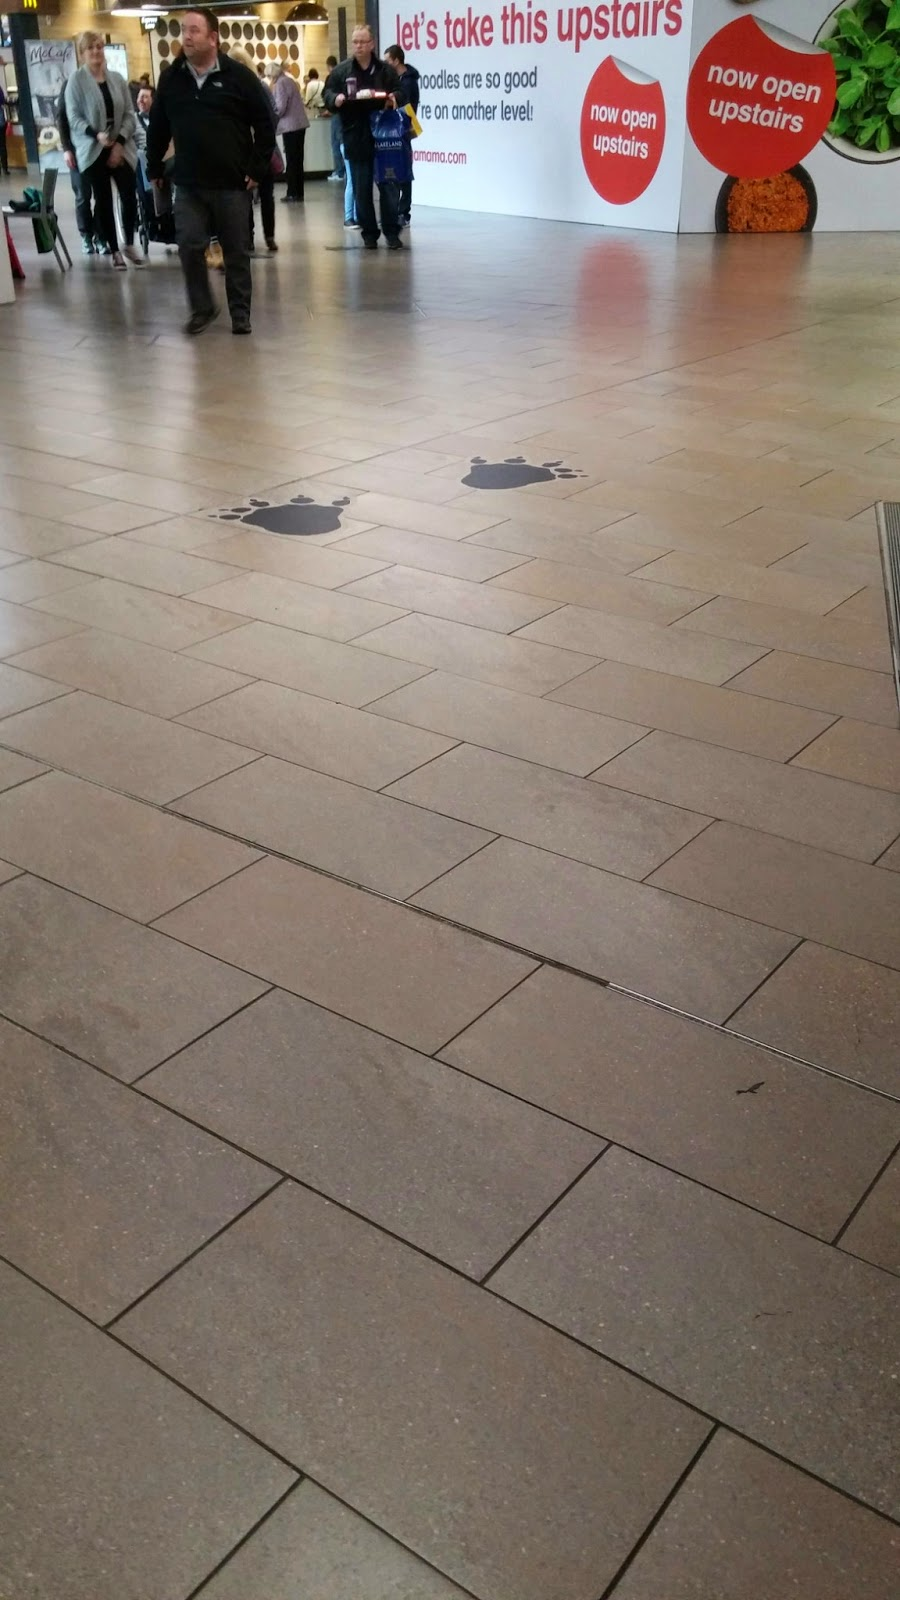 footprints in the shopping centre